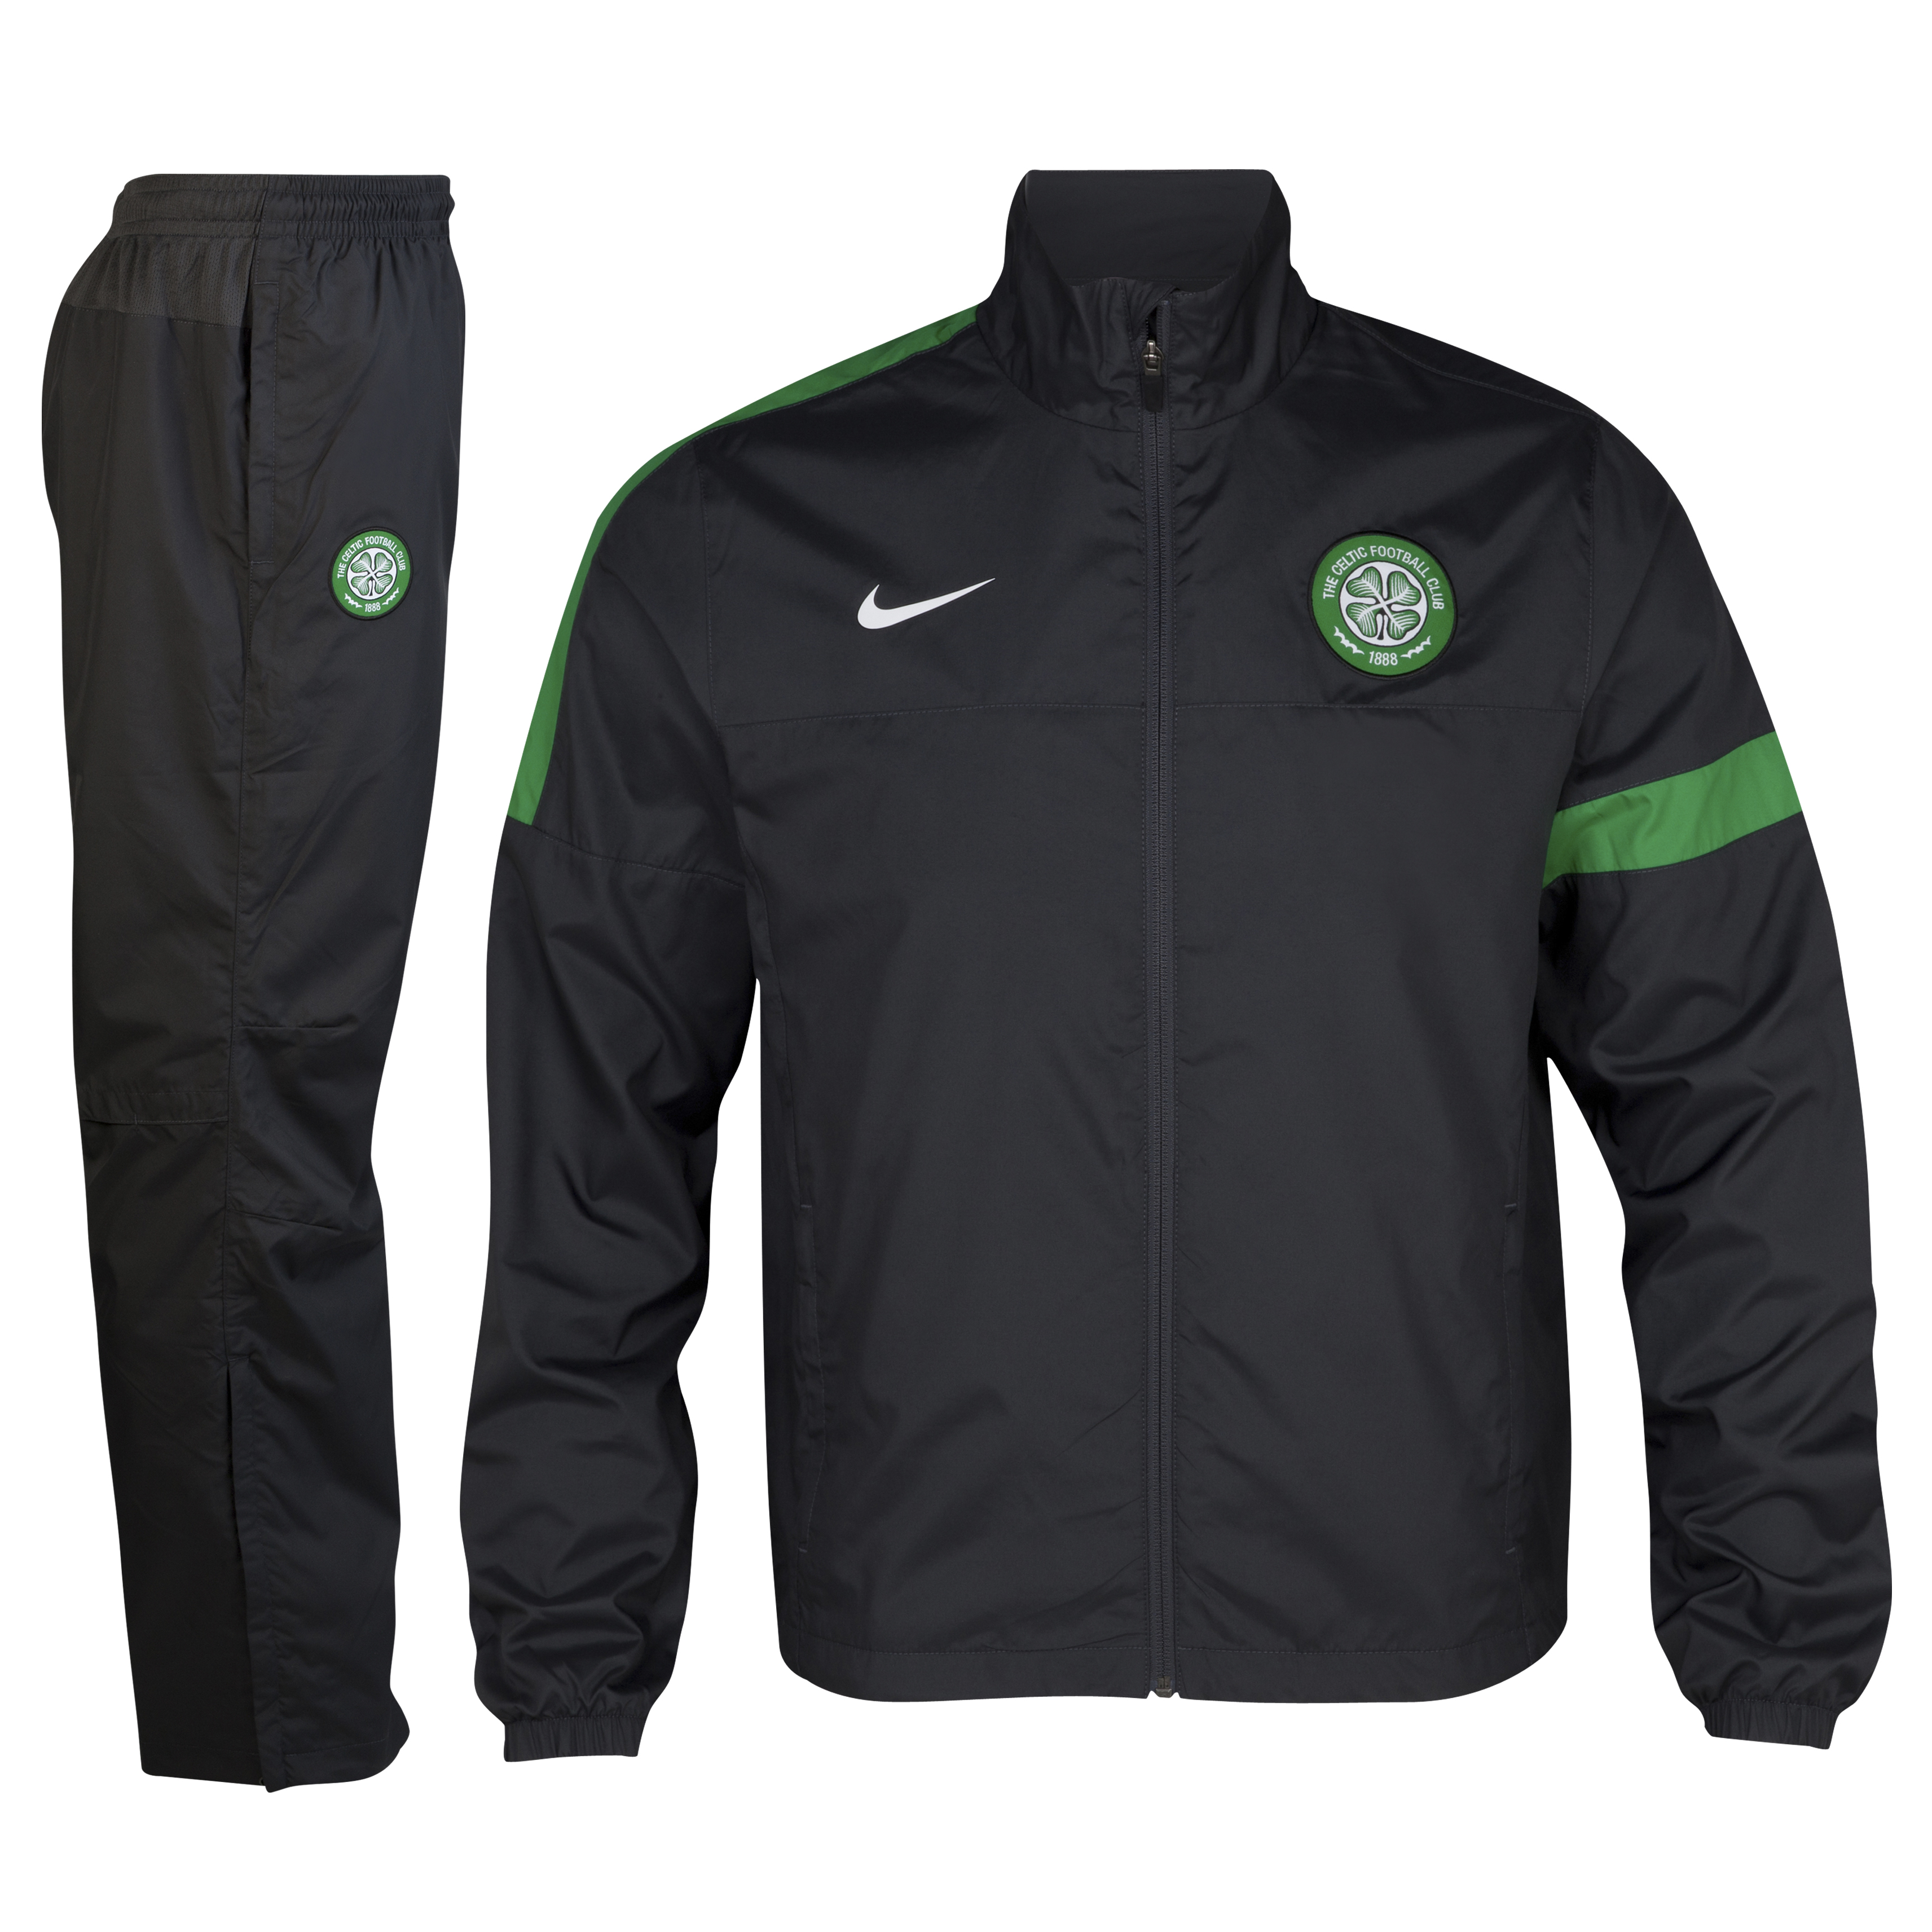 Celtic Sideline Woven Warm Up Tracksuit - Anthracite/Anthracite/White - Youths